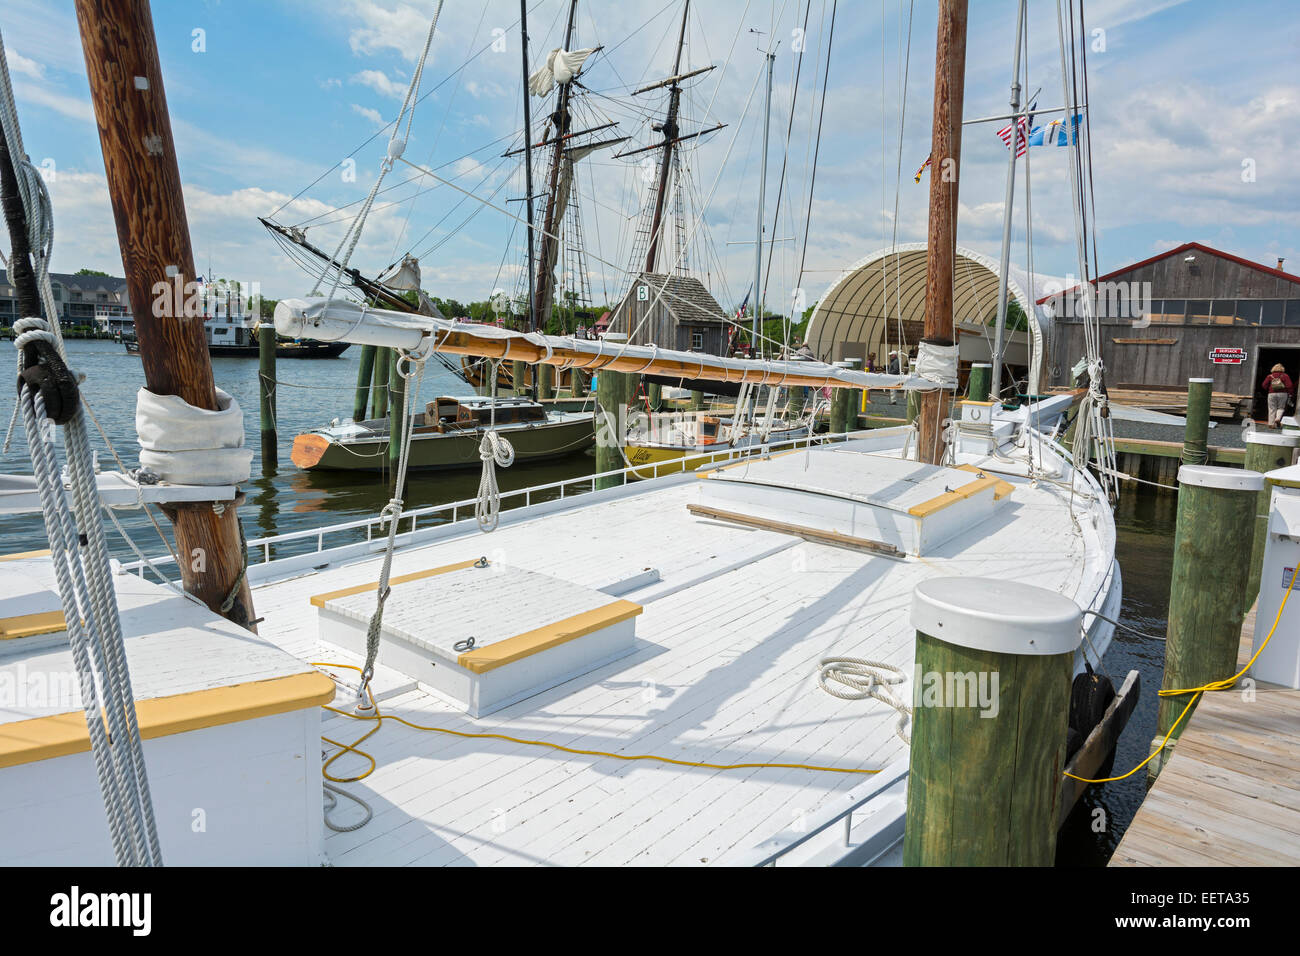 Maryland, Eastern Shore, St. Michaels, Chesapeake Bay Maritime Museum, Edna E. Lockwood, Bugeye type, built 1869 - Stock Image